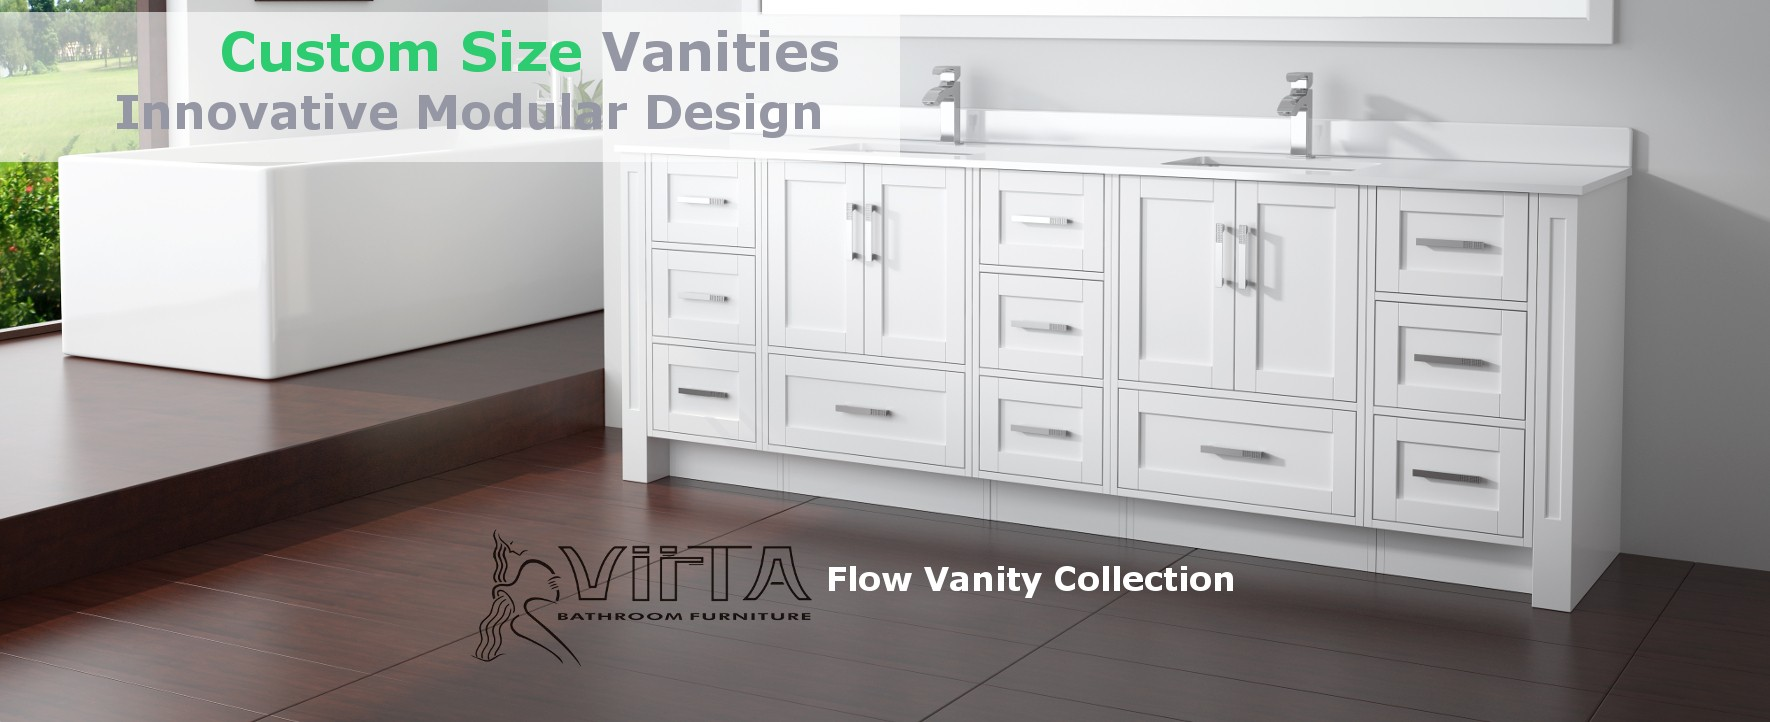 Custom Size Vanities